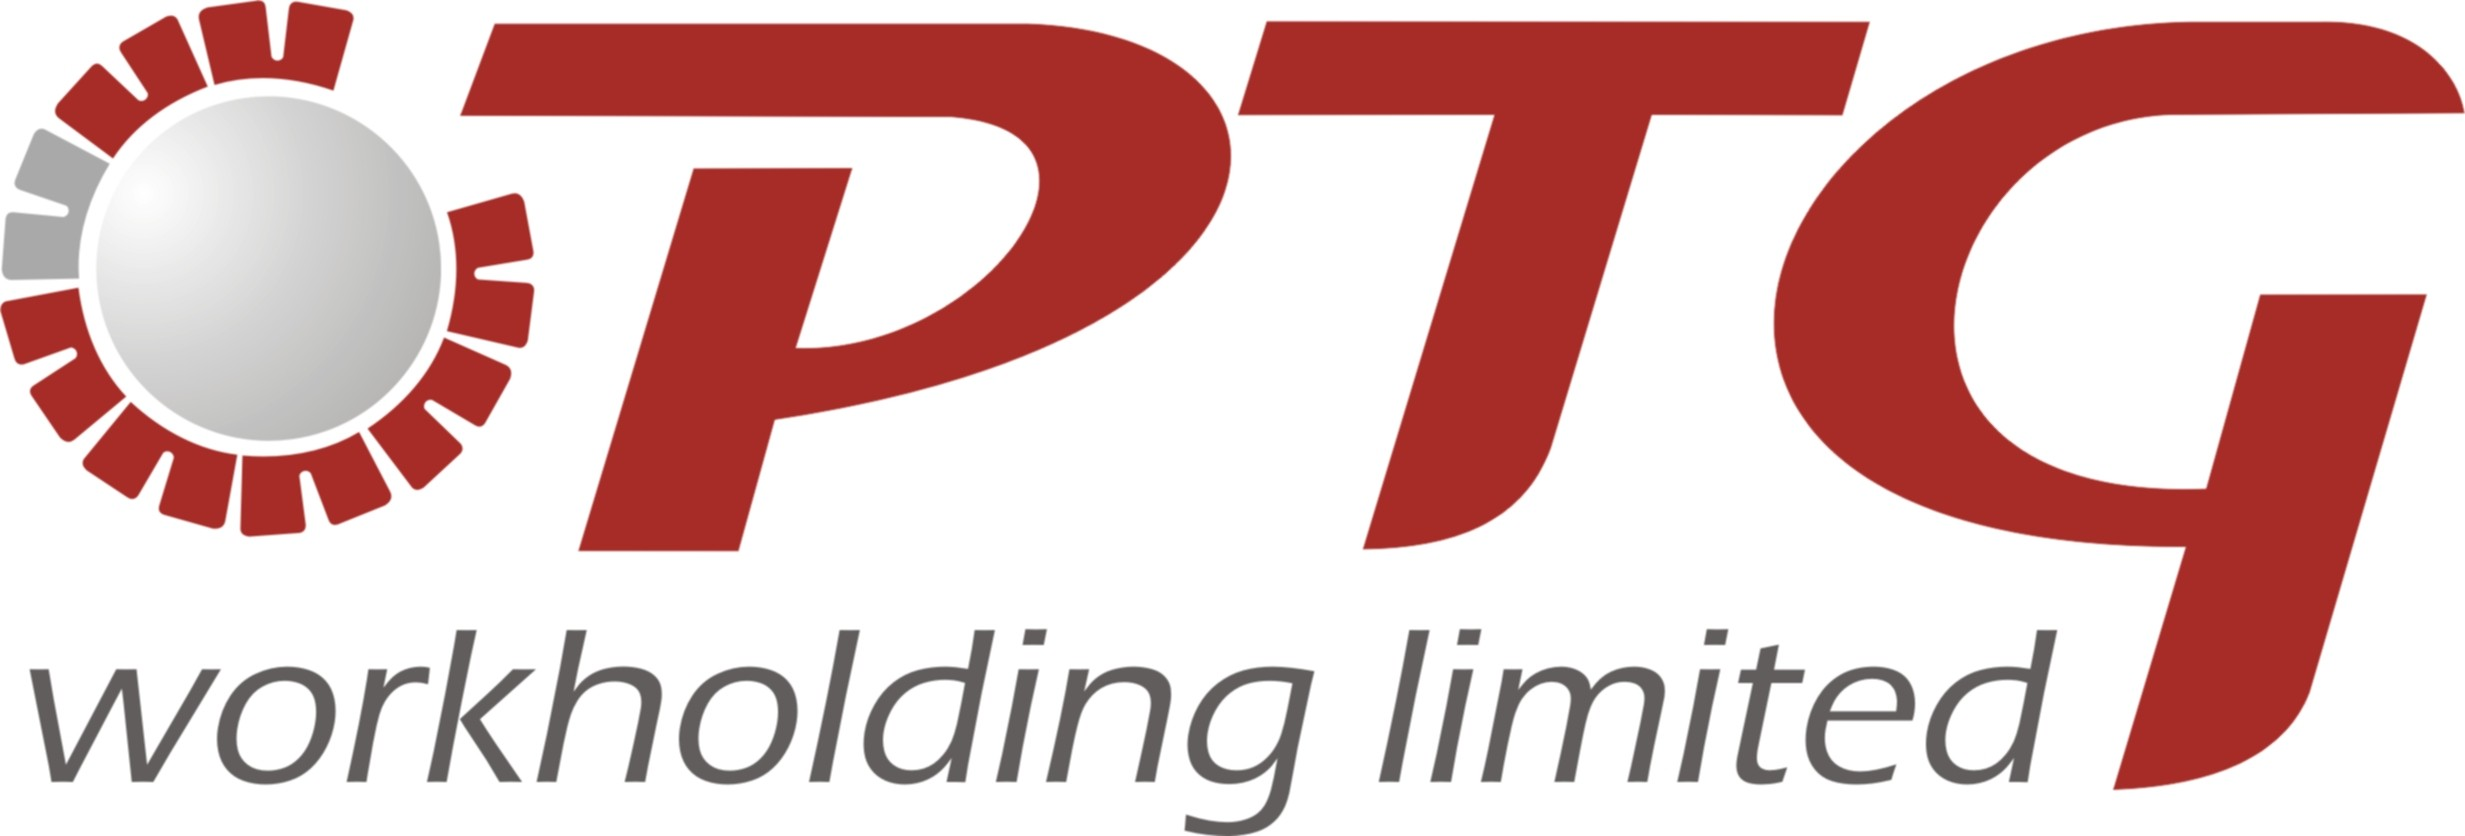 PTG Workholding Limited